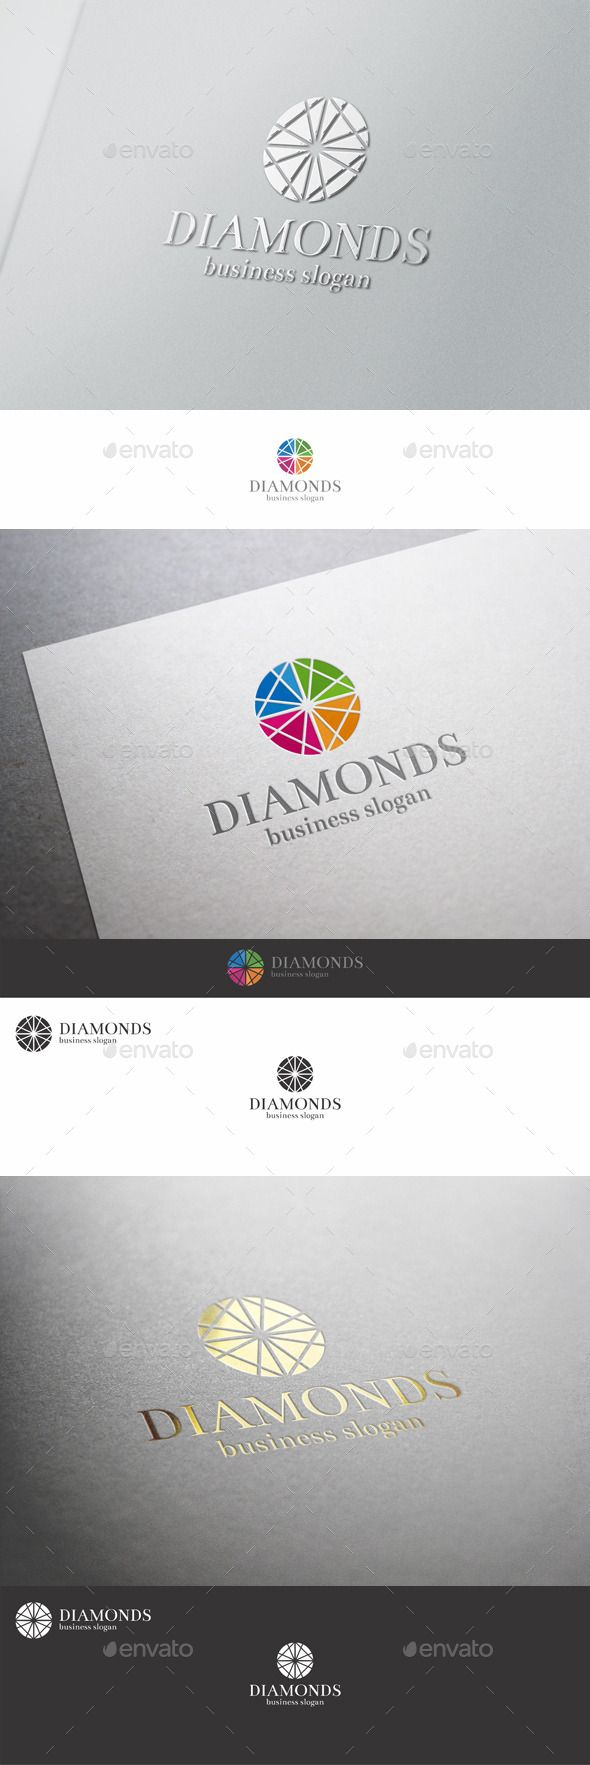 Diamonds Logo Template - Diamonds Jewelry Logo – Four Diamonds Logo Template – Excellent logo,simple and unique. A logo template suitable for the diamond manufacturing industry. Suitable for jewellery, bijouterie, Hotel and Resort, Casino, Restaurant, luxury industry like jewellery / jewelry, real estate, fashion clothes, perfumes, jewelry shop, fashion business, or other related.